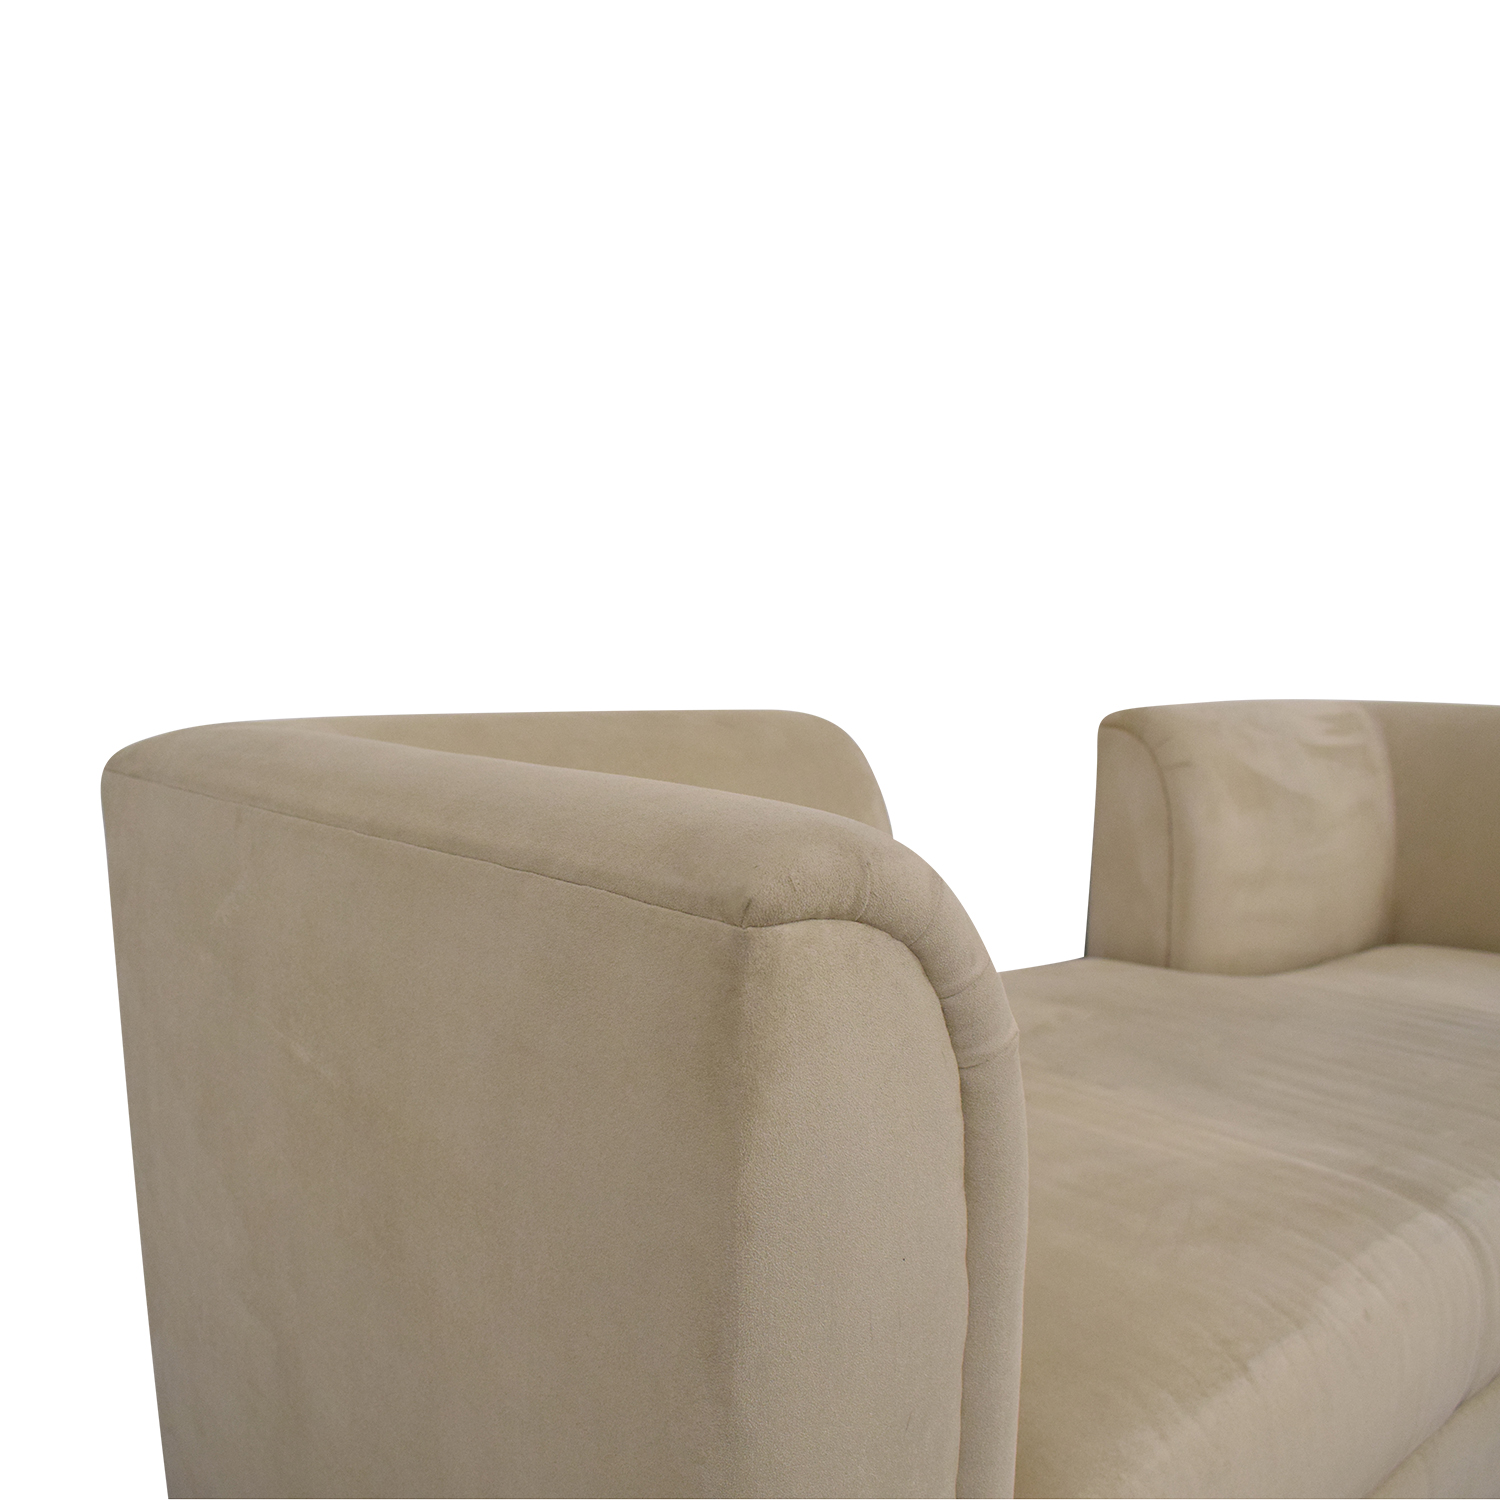 Custom Single Cushion Sofa Classic Sofas